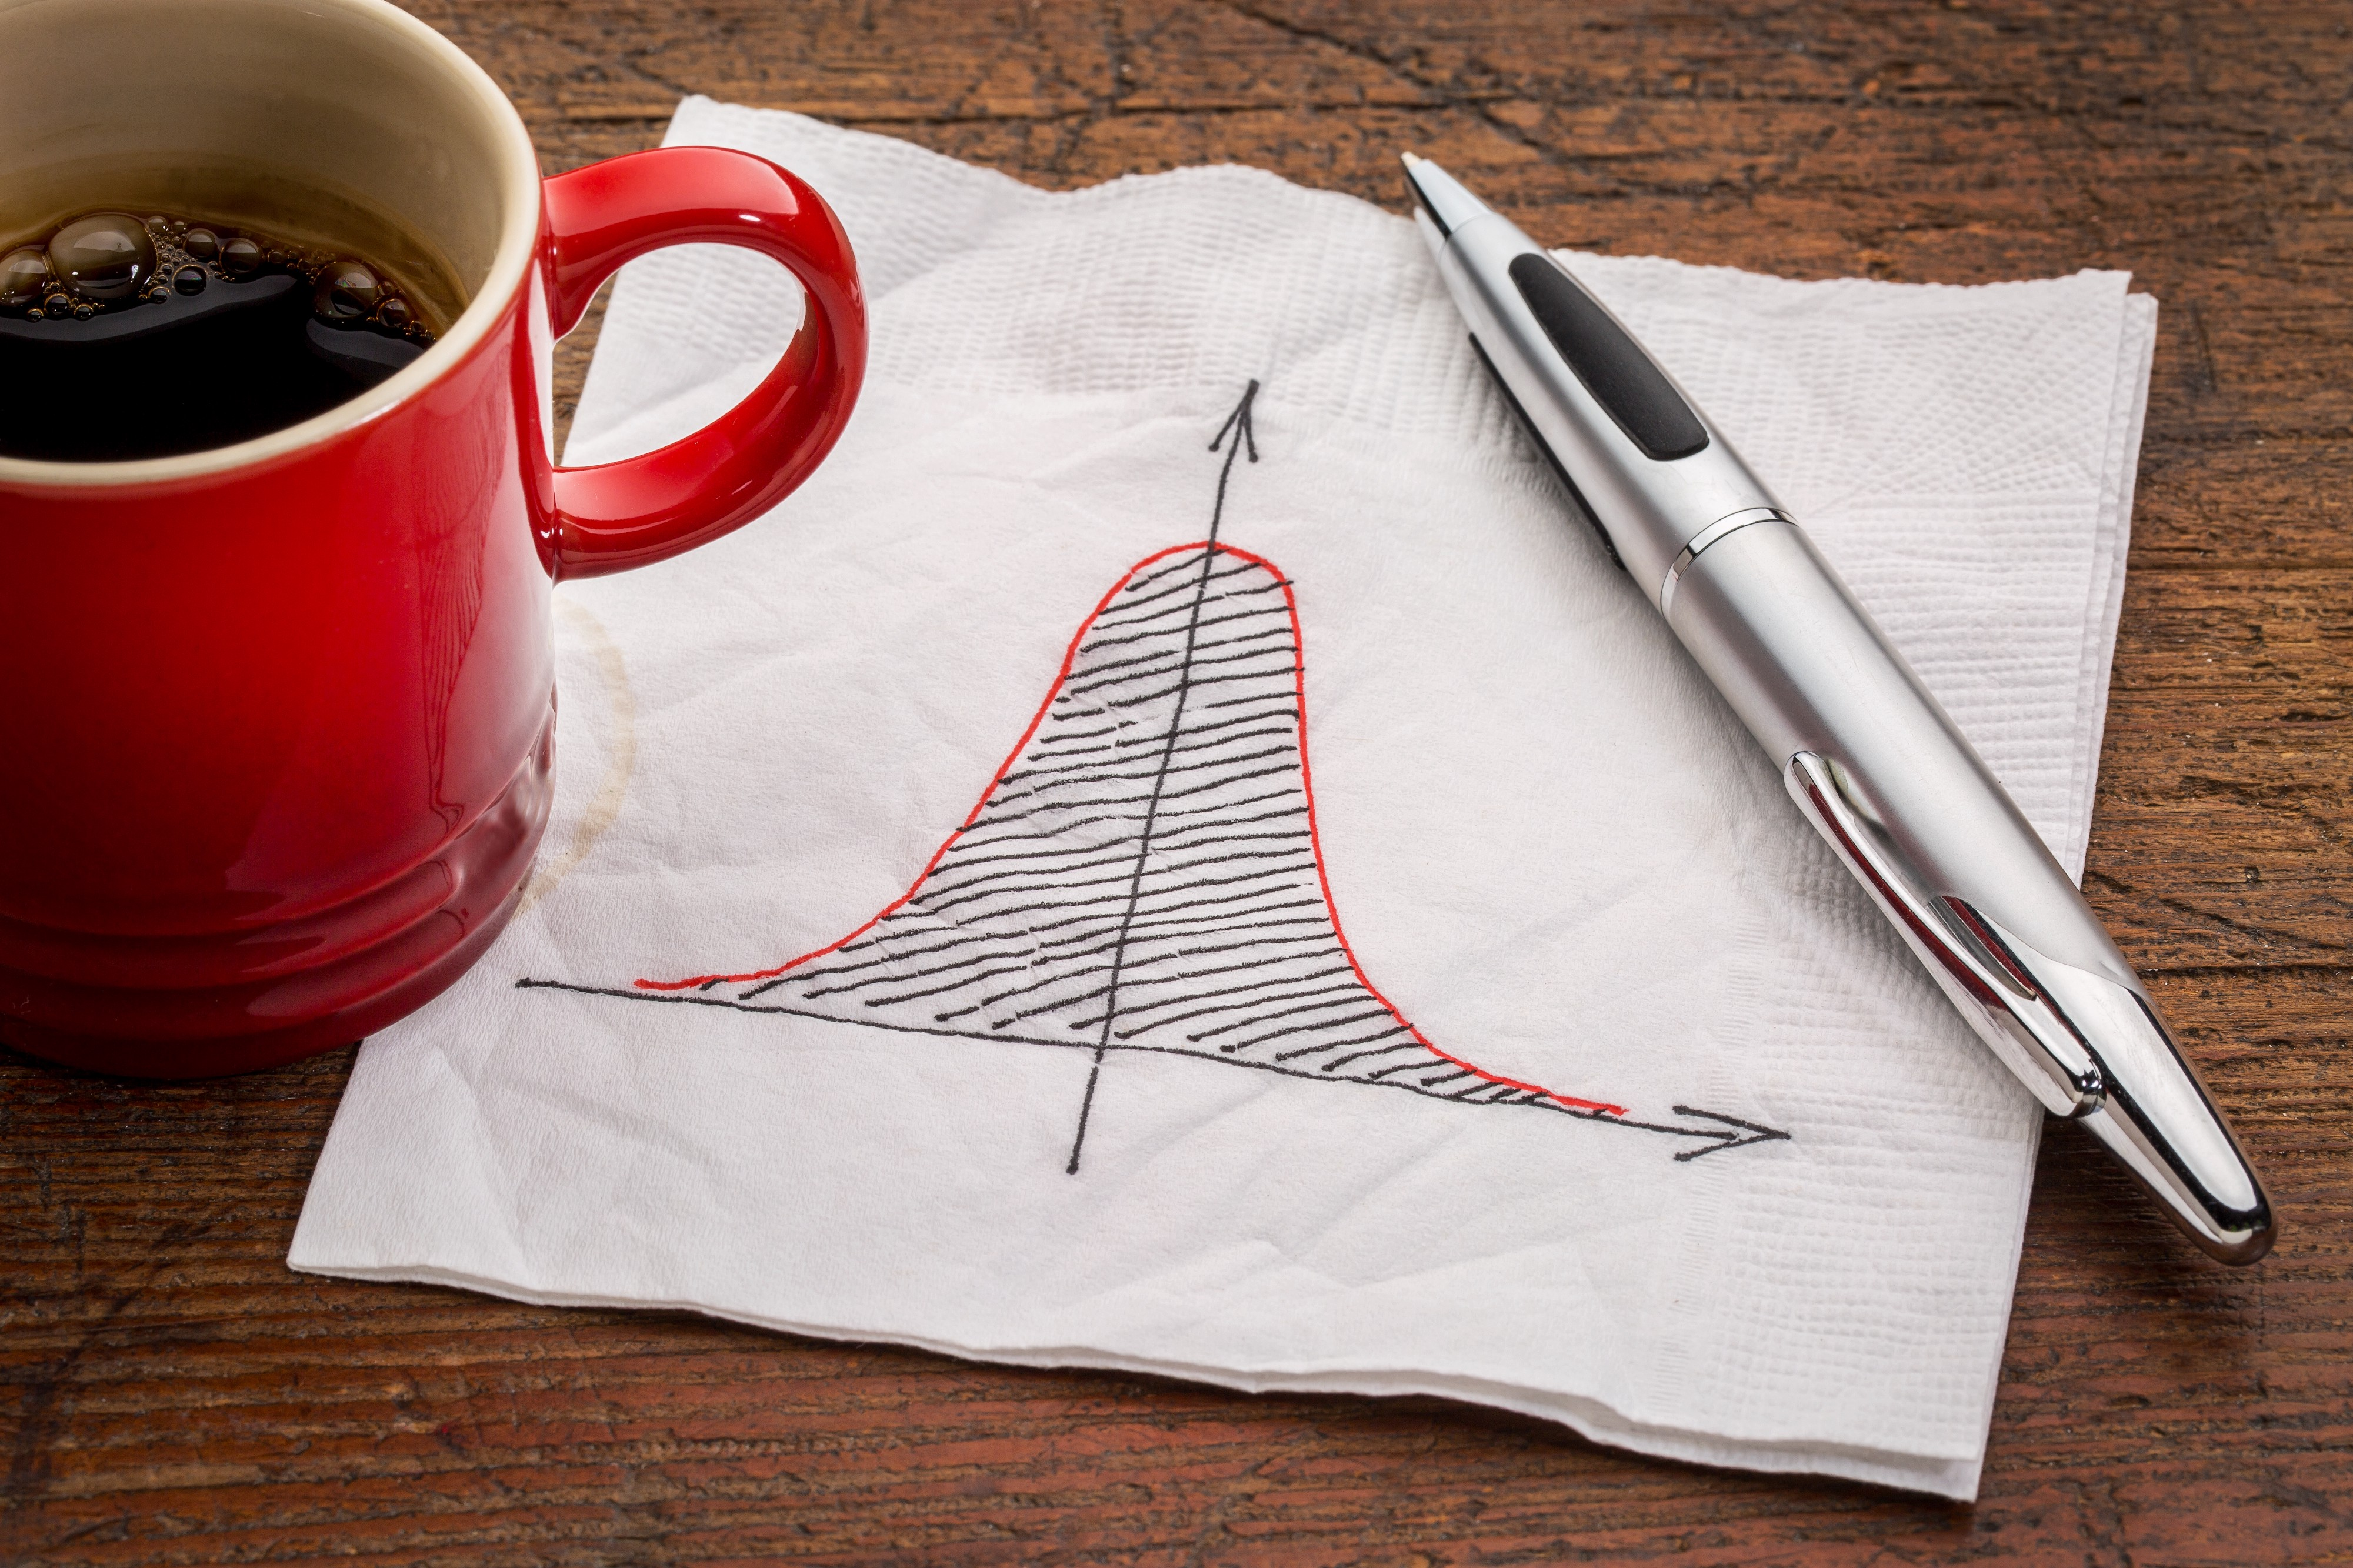 Close up of a napkin with a hand-drawn bell curve.